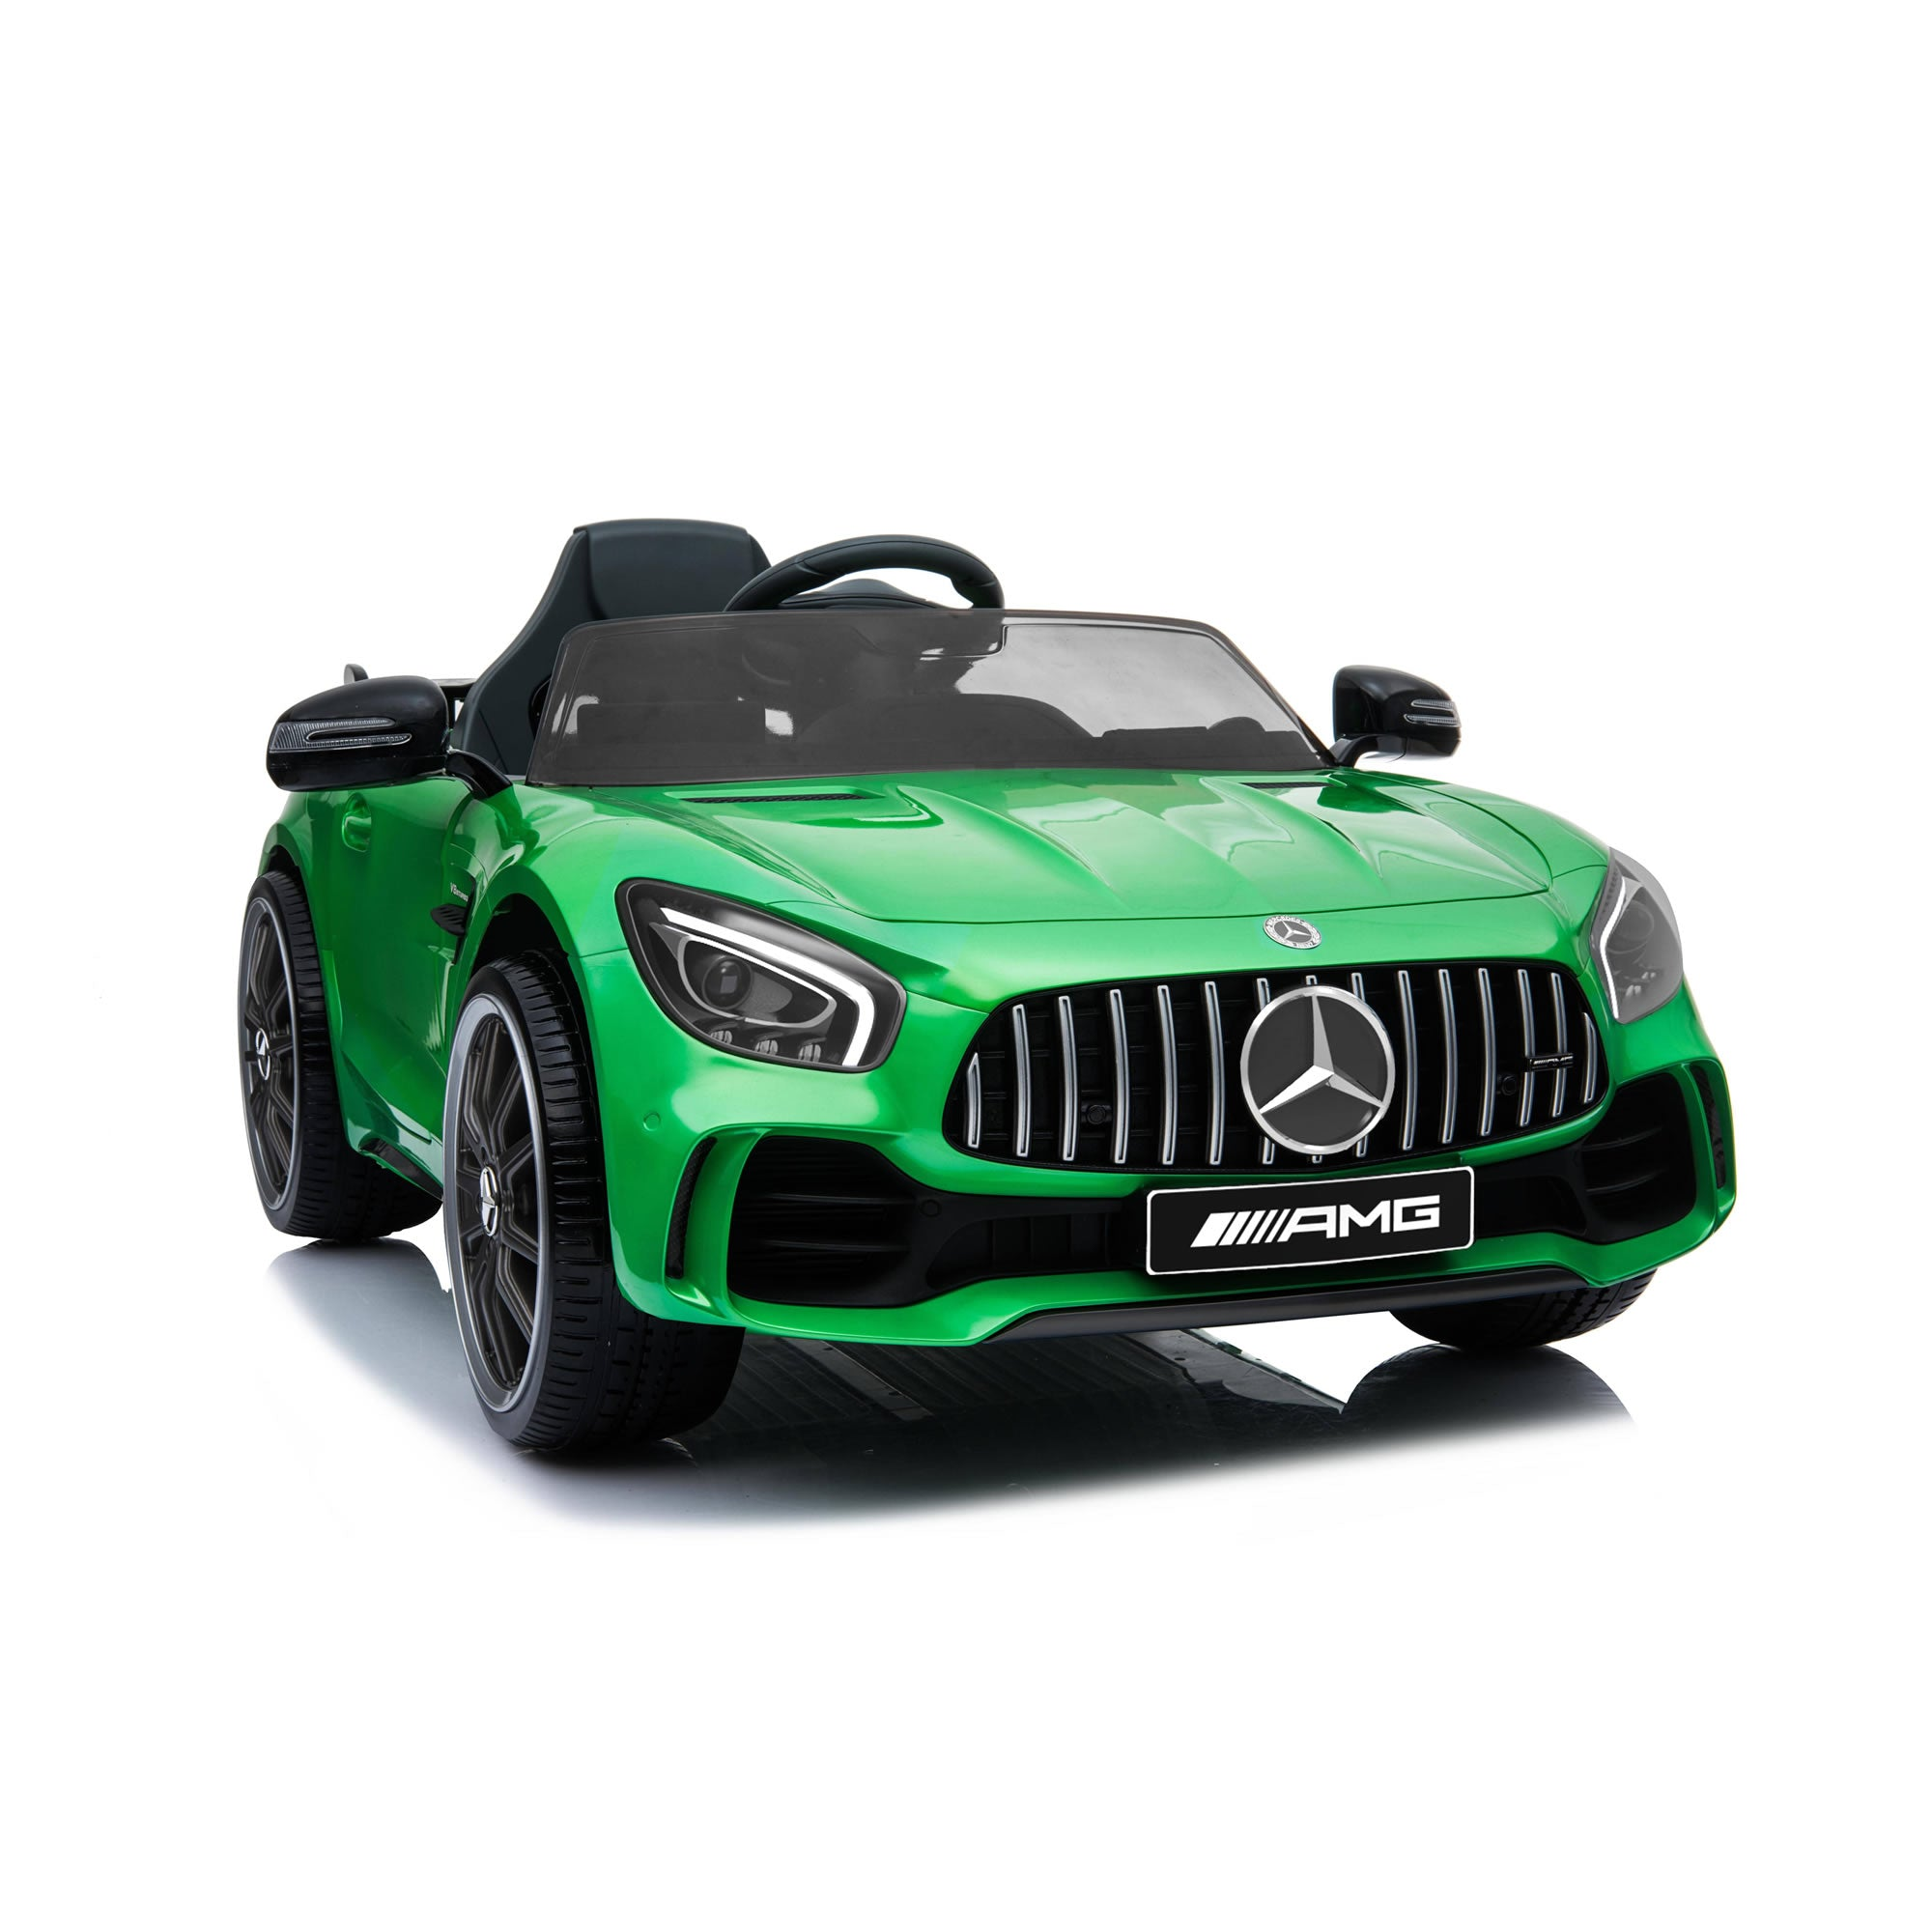 Black Friday Licensed Mercedes Benz GTR 12v Ride on Car - Green